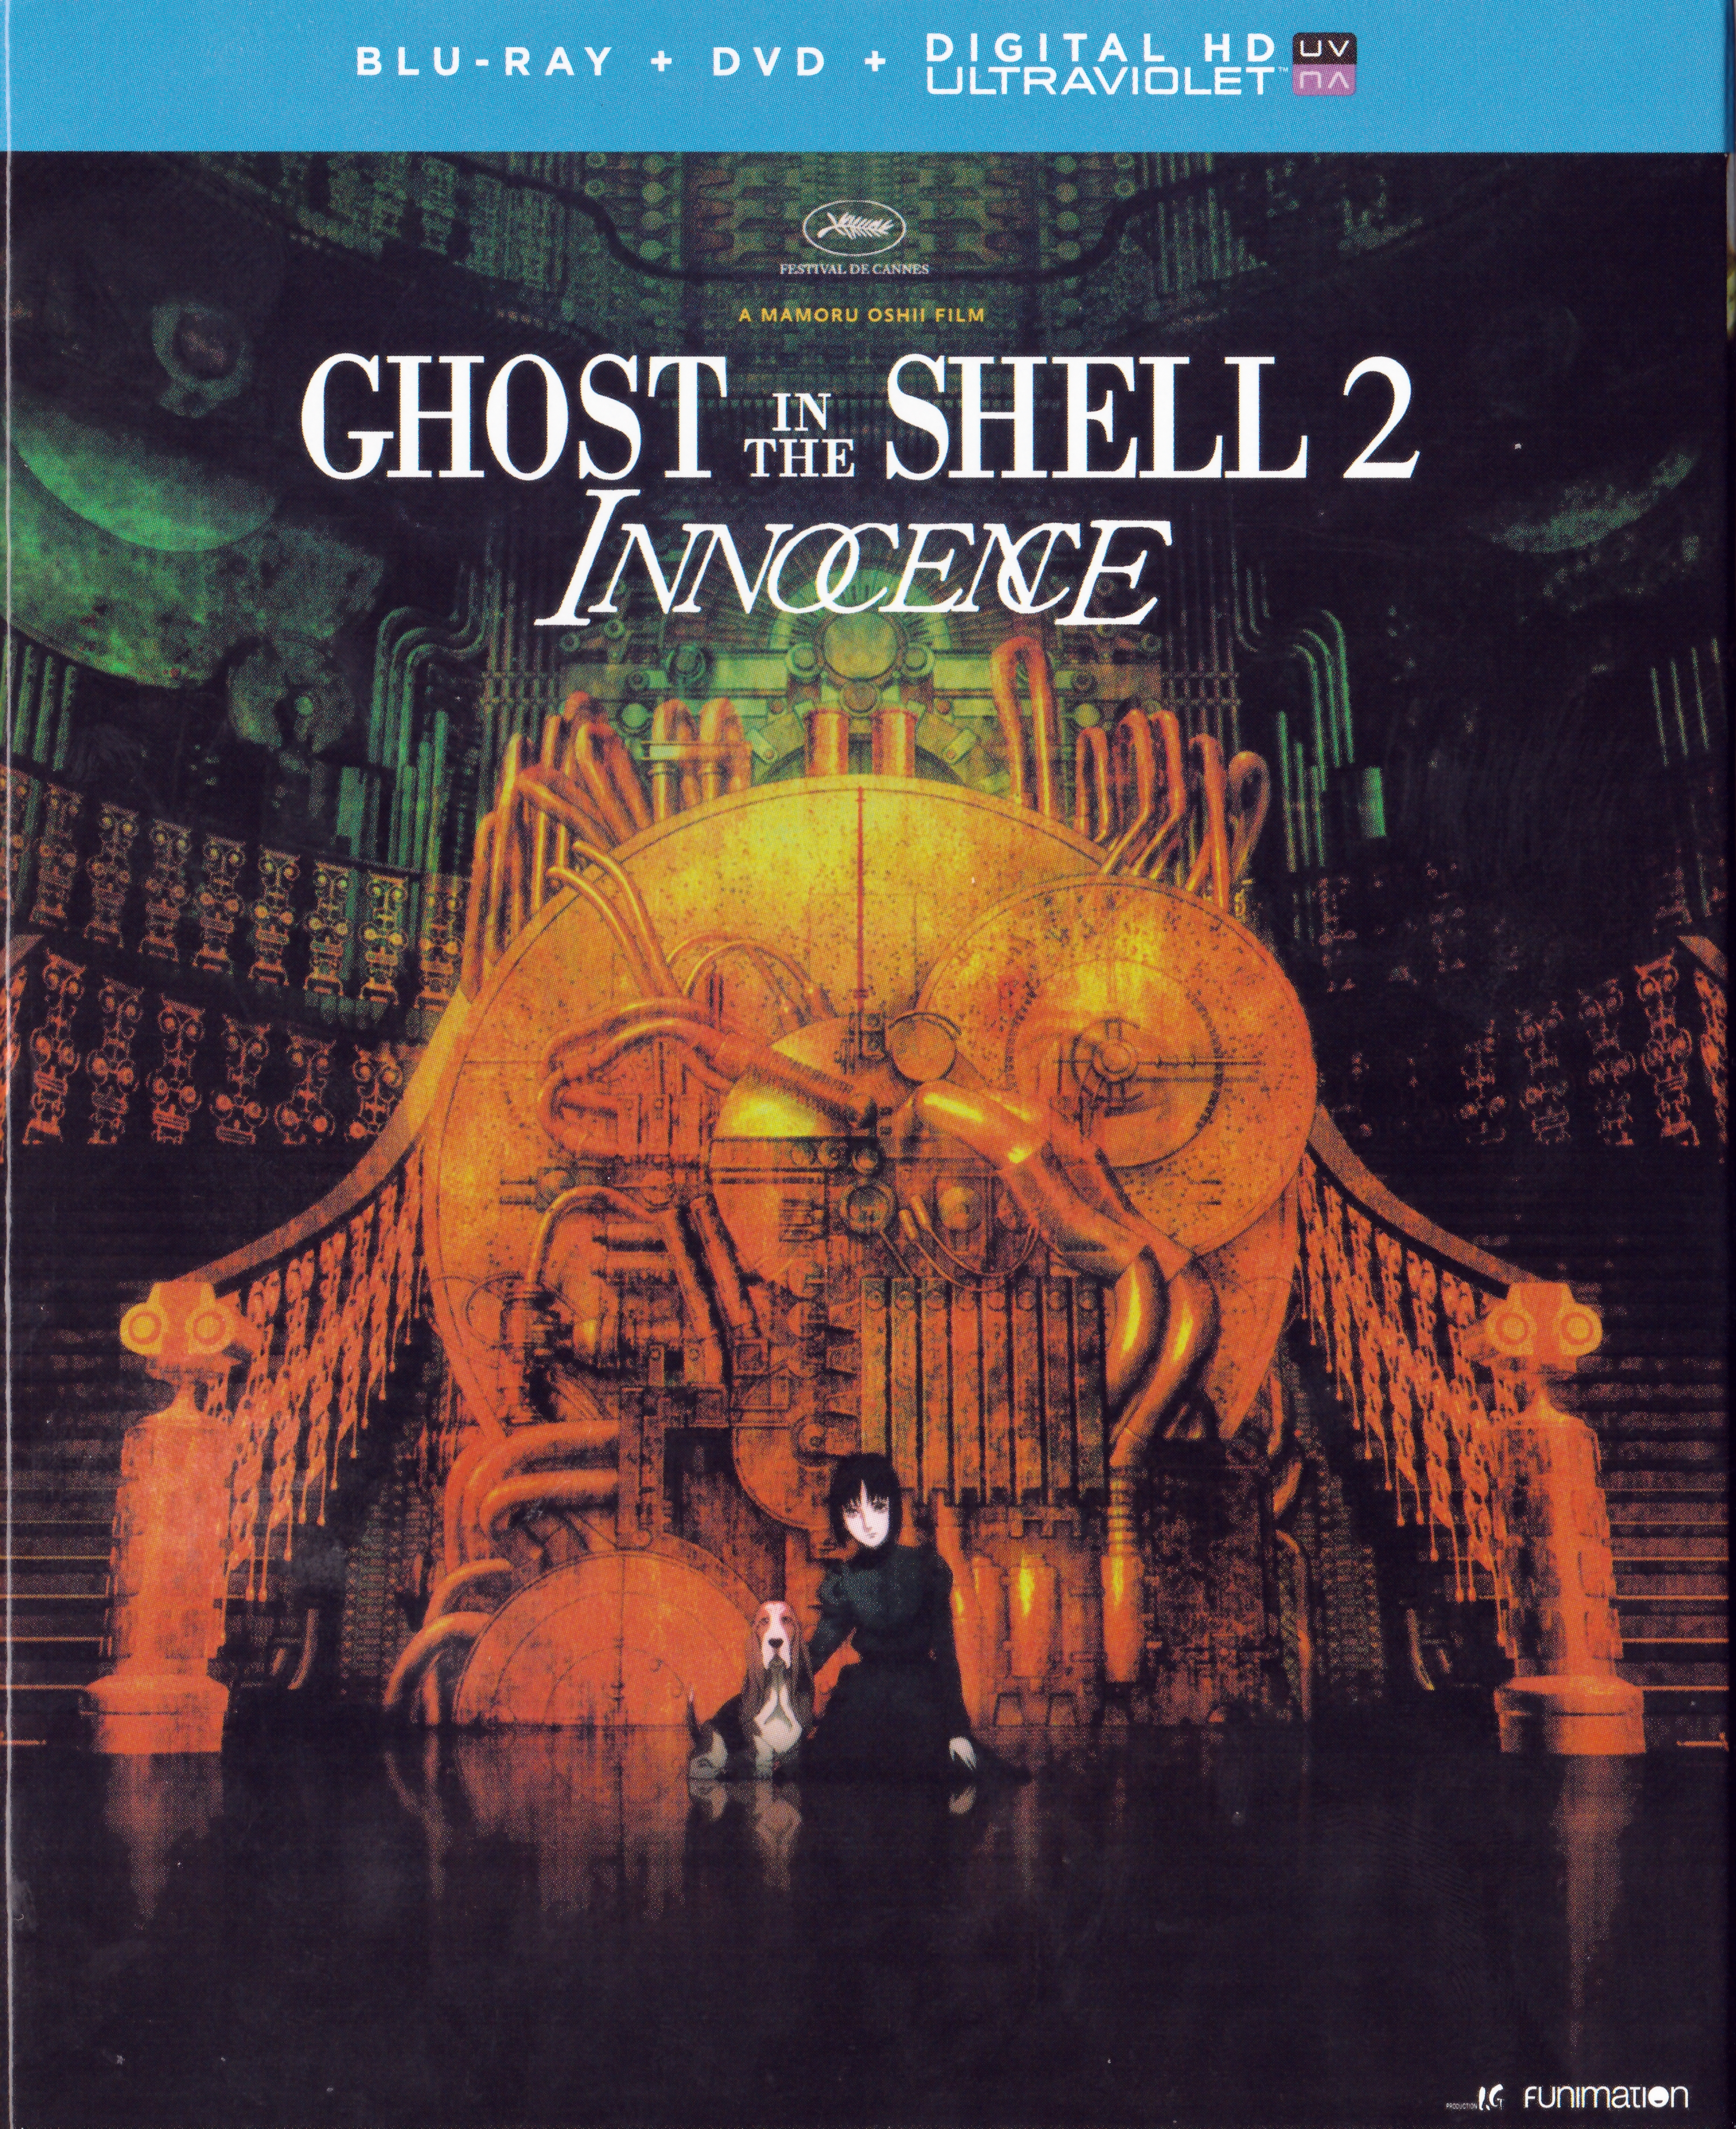 Anime Review Ghost In The Shell 2 Innocence 2004 U S Dvd Blu Ray Combo Dvd News Flash The Reviews